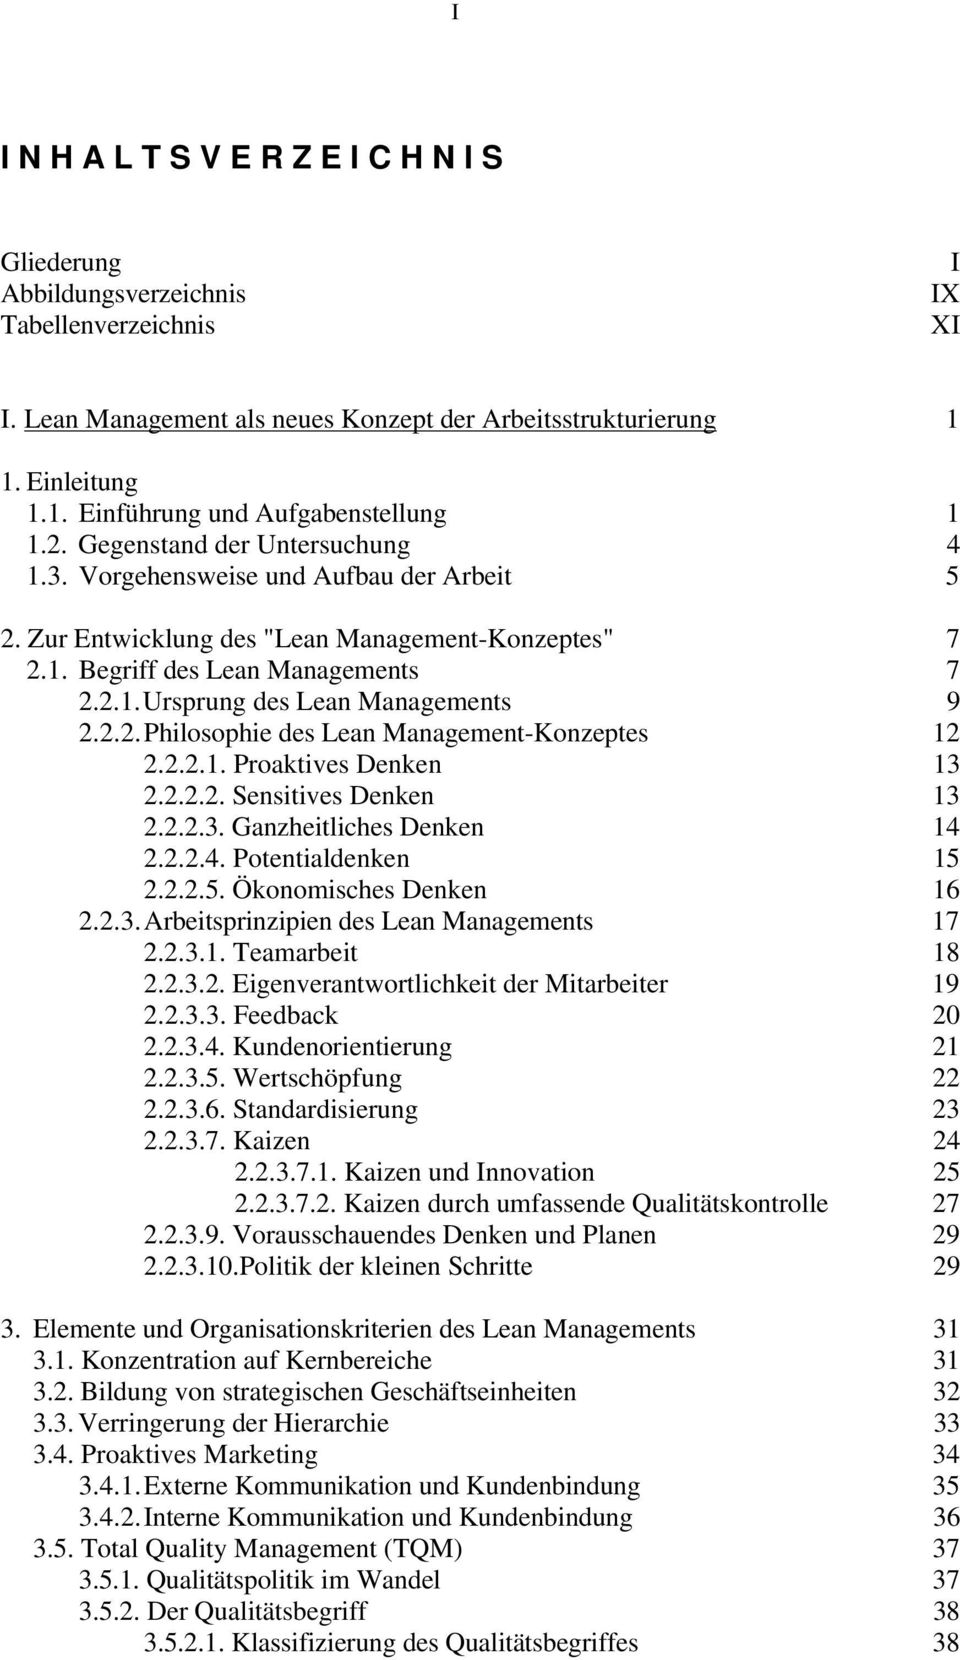 2.1.Ursprung des Lean Managements 9 2.2.2.Philosophie des Lean Management-Konzeptes 12 2.2.2.1. Proaktives Denken 13 2.2.2.2. Sensitives Denken 13 2.2.2.3. Ganzheitliches Denken 14